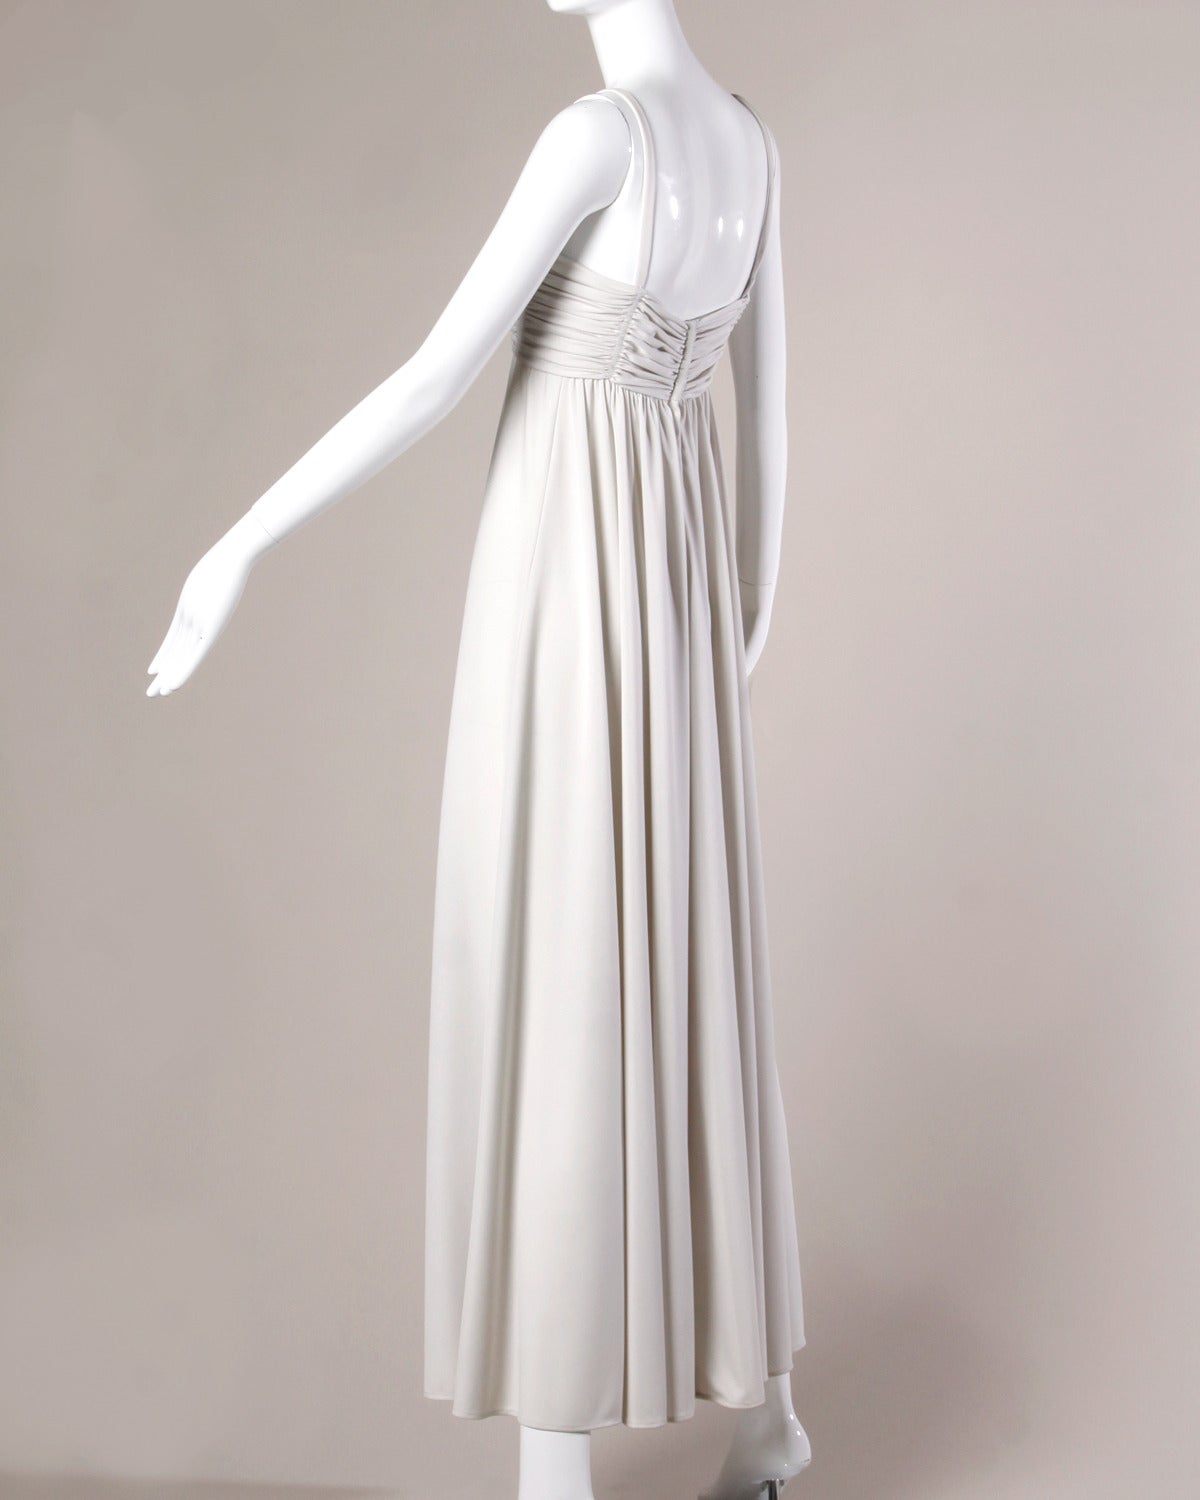 Lilli Diamond Vintage 1970s Pale Gray Beaded Empire Maxi Dress In Excellent Condition For Sale In Sparks, NV